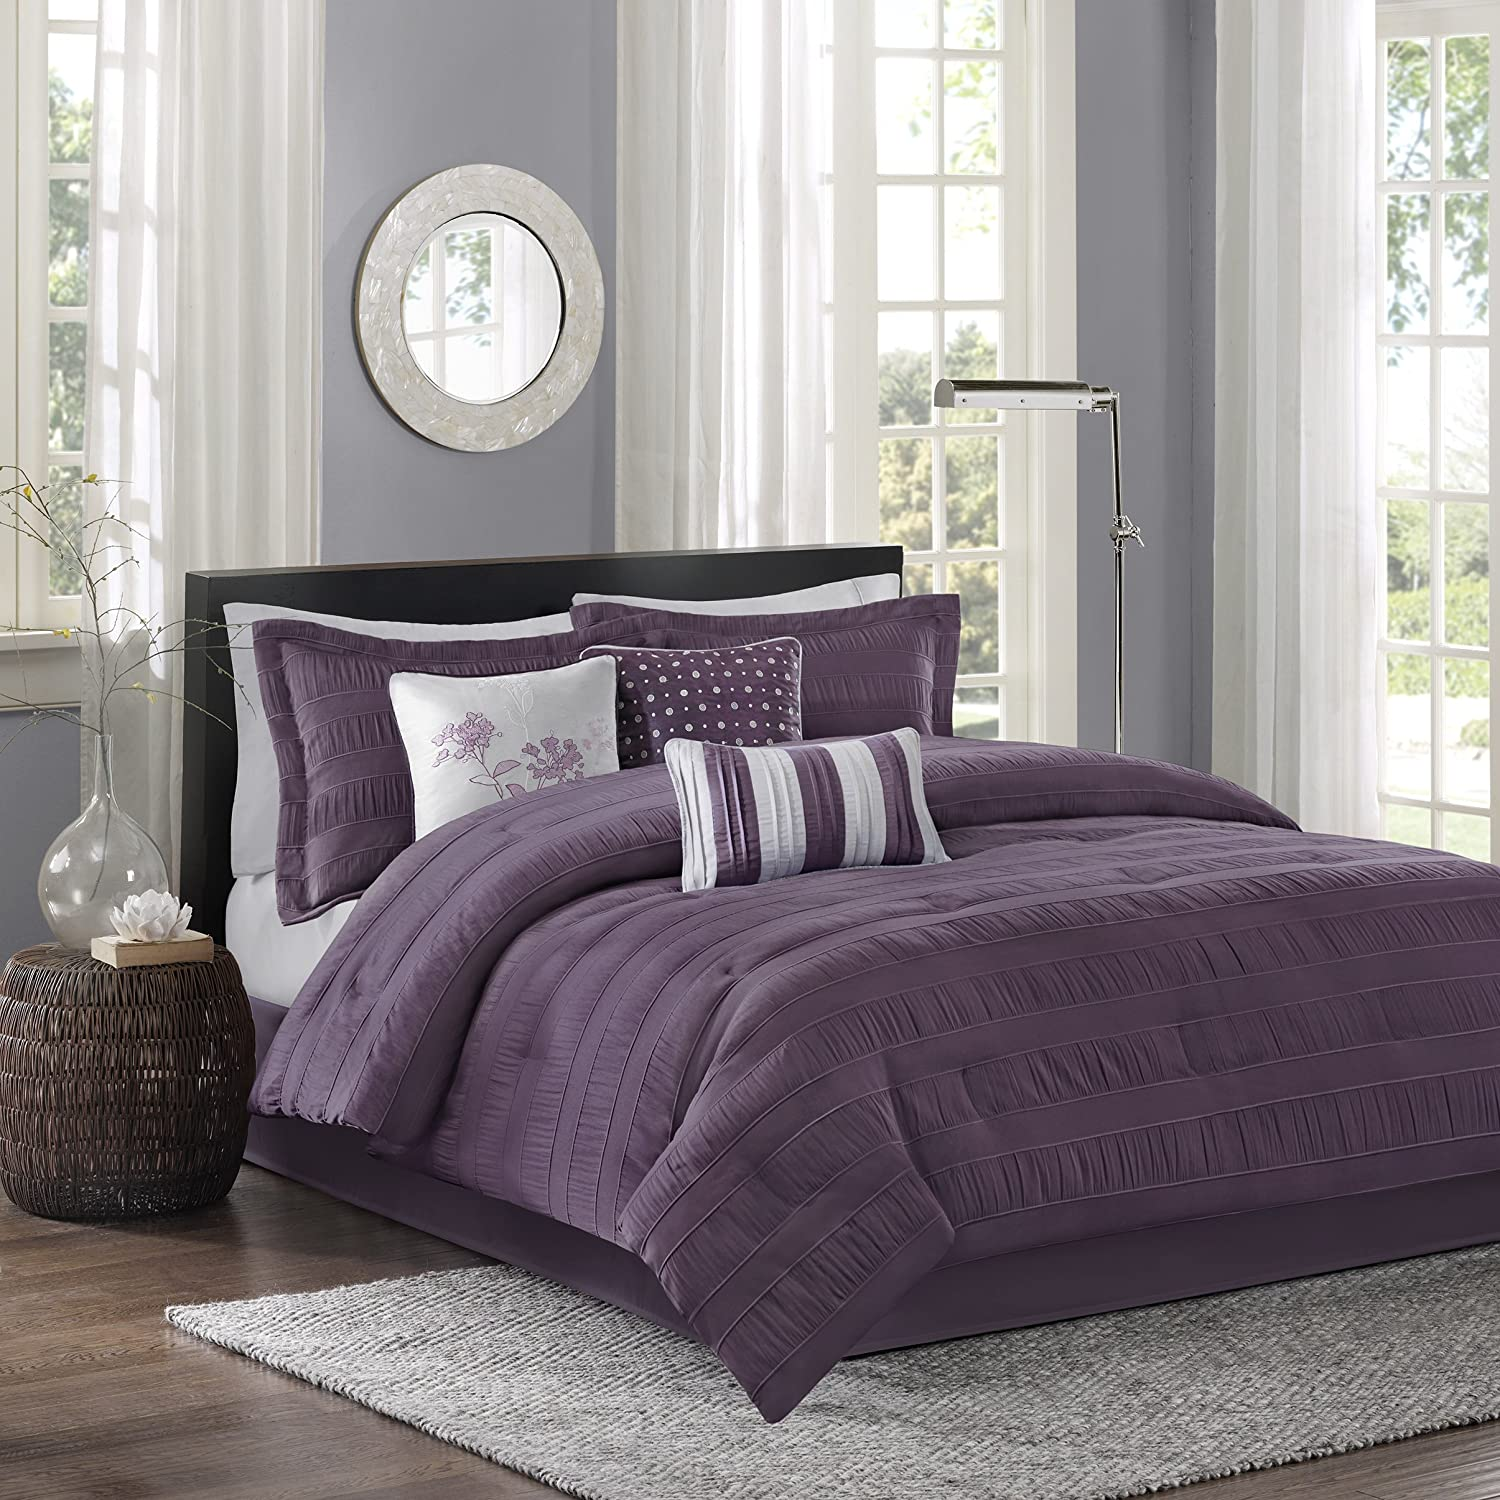 Purple Bedding Sets A Bedroom Decor Of Nature And Royalty